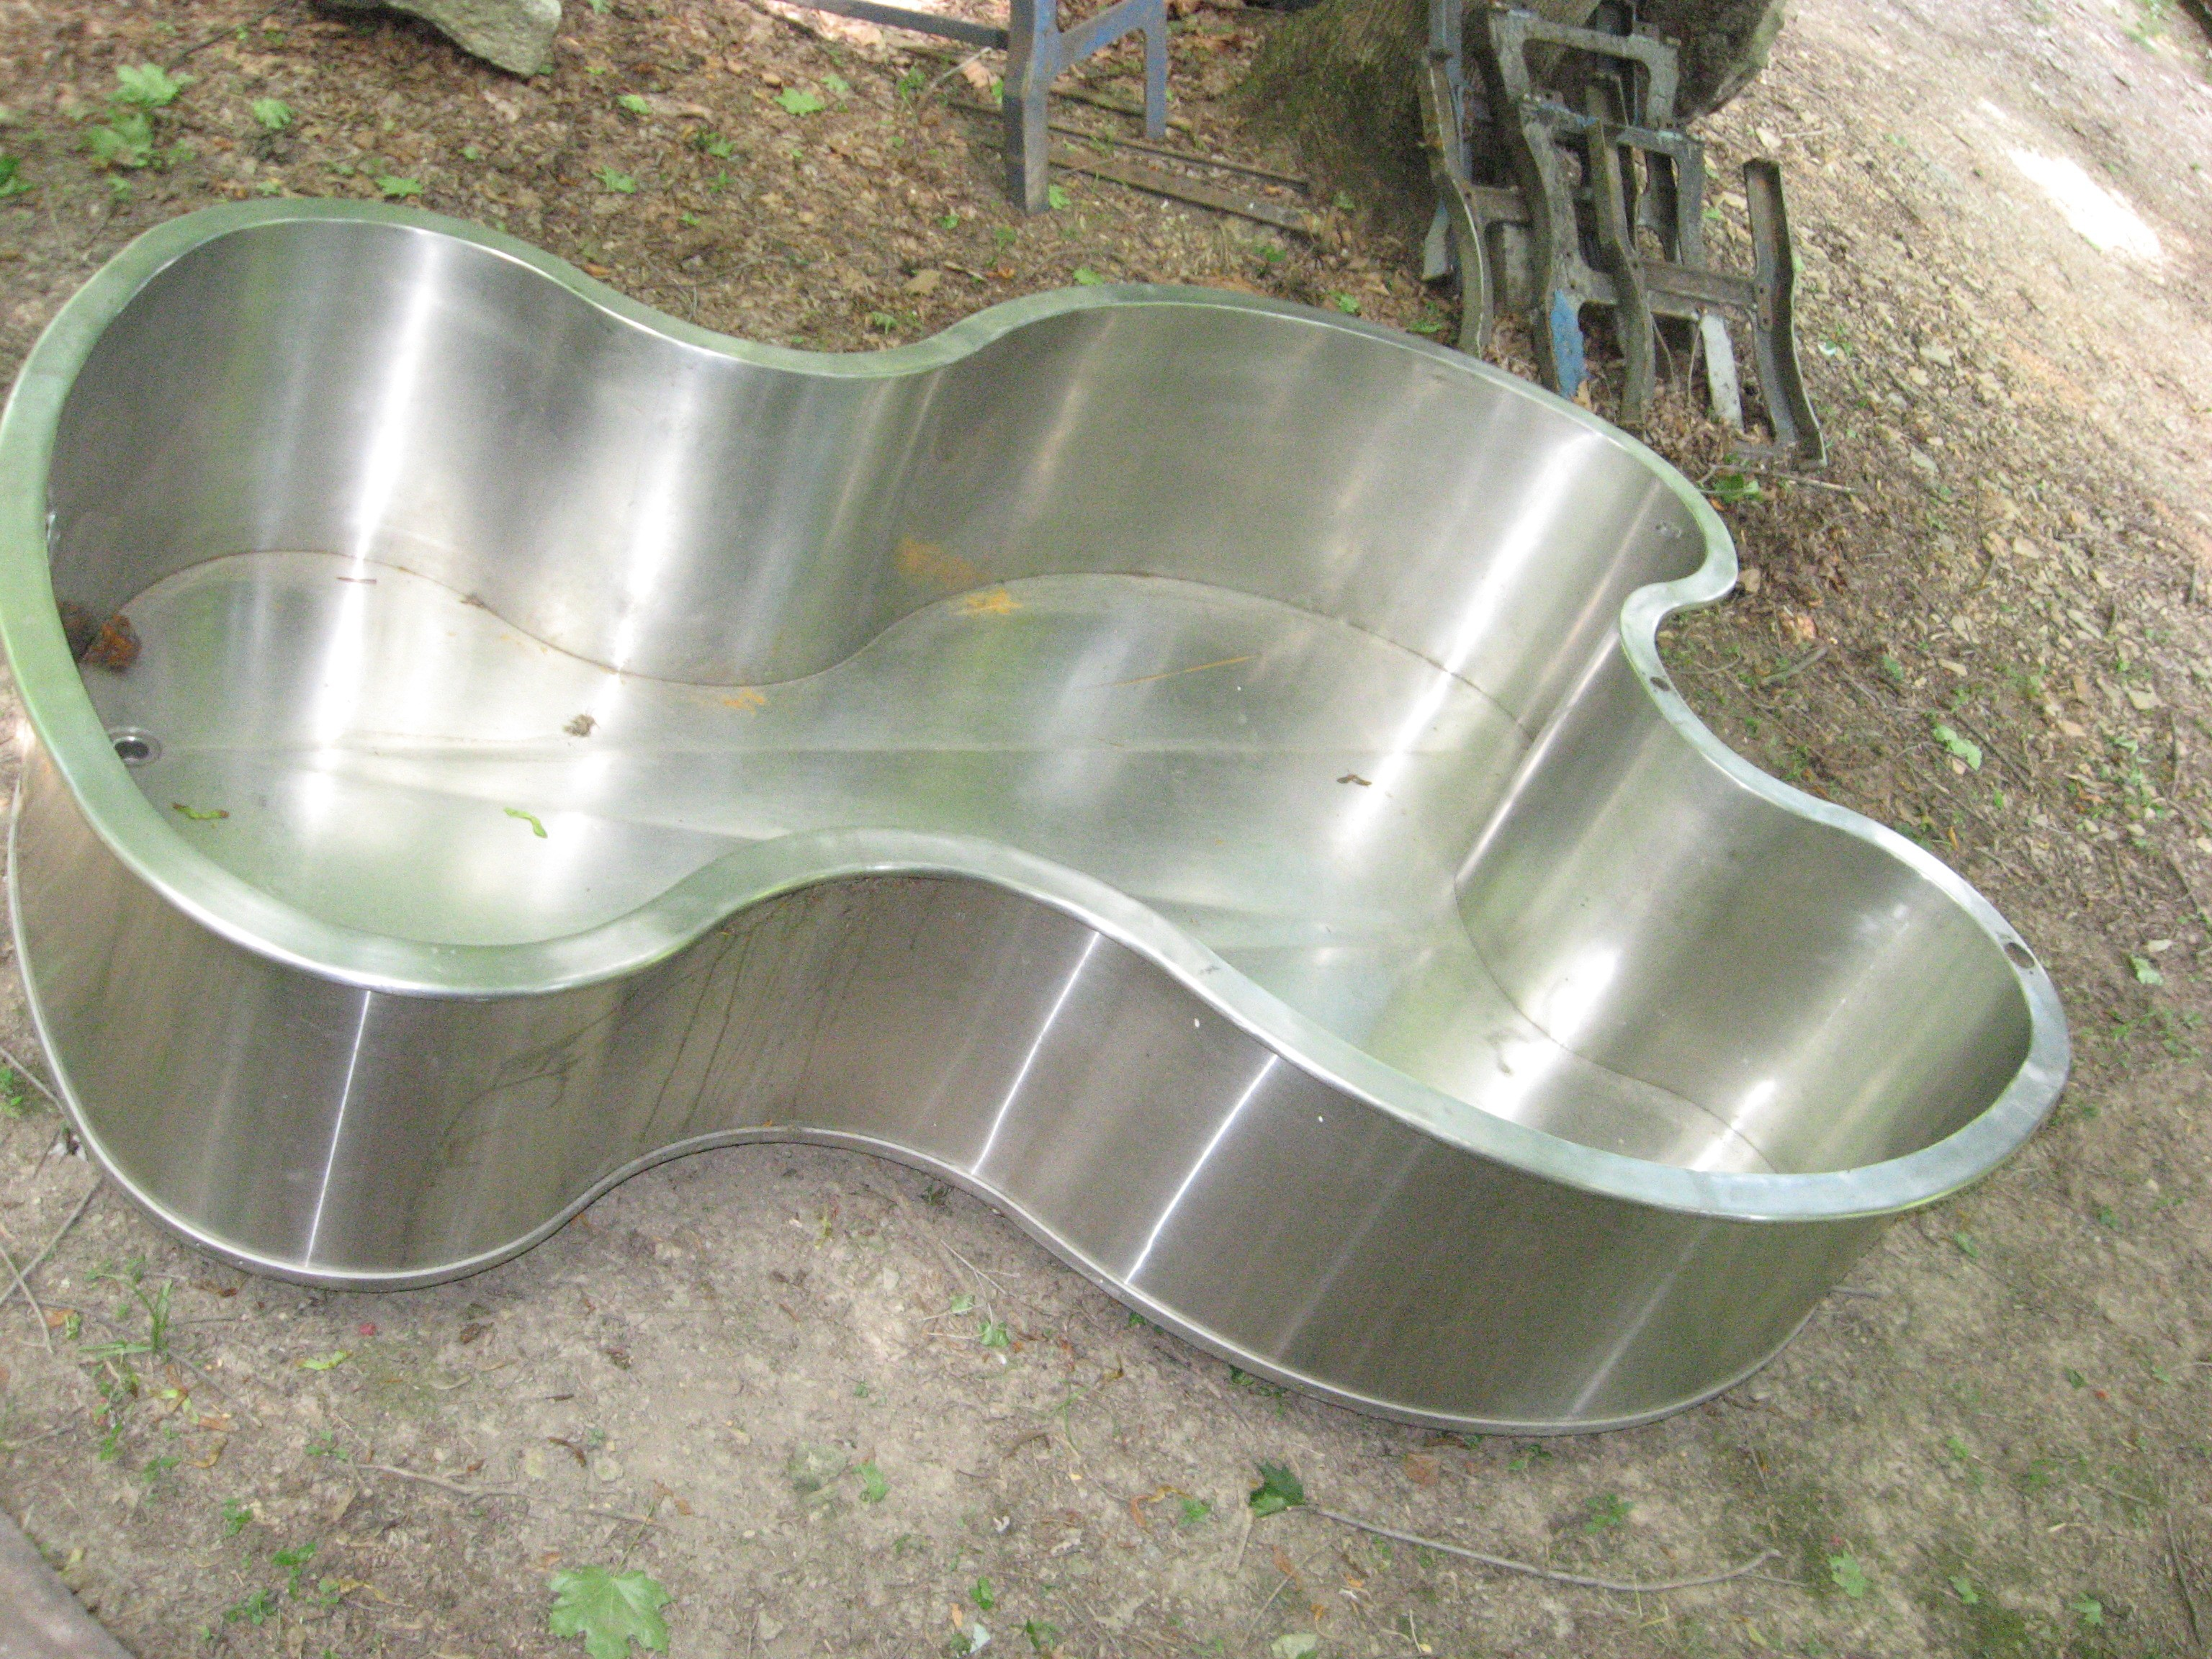 Hydrotherapy tub stainless steel found objects of industry for Koi pond motors